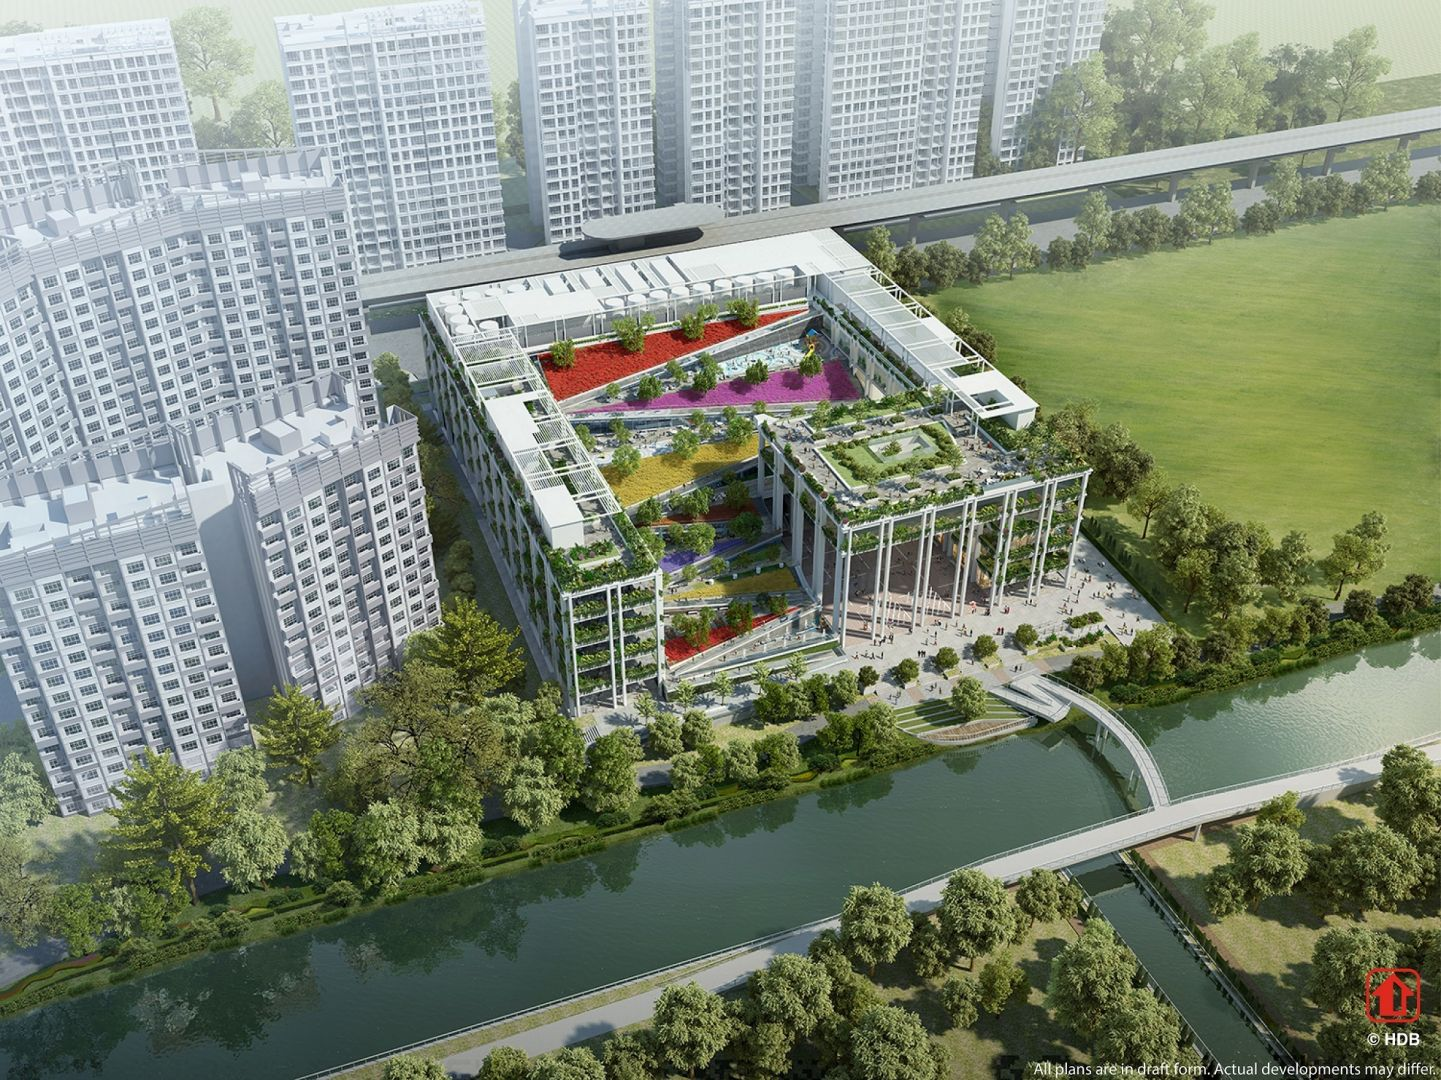 EC Singapore - New Singapore EC, Oasis Terraces in Punggol, About Singapore EC, EC Eligibility, Apply Singapore EC, Executive Condo Singapore, Executive Condo.